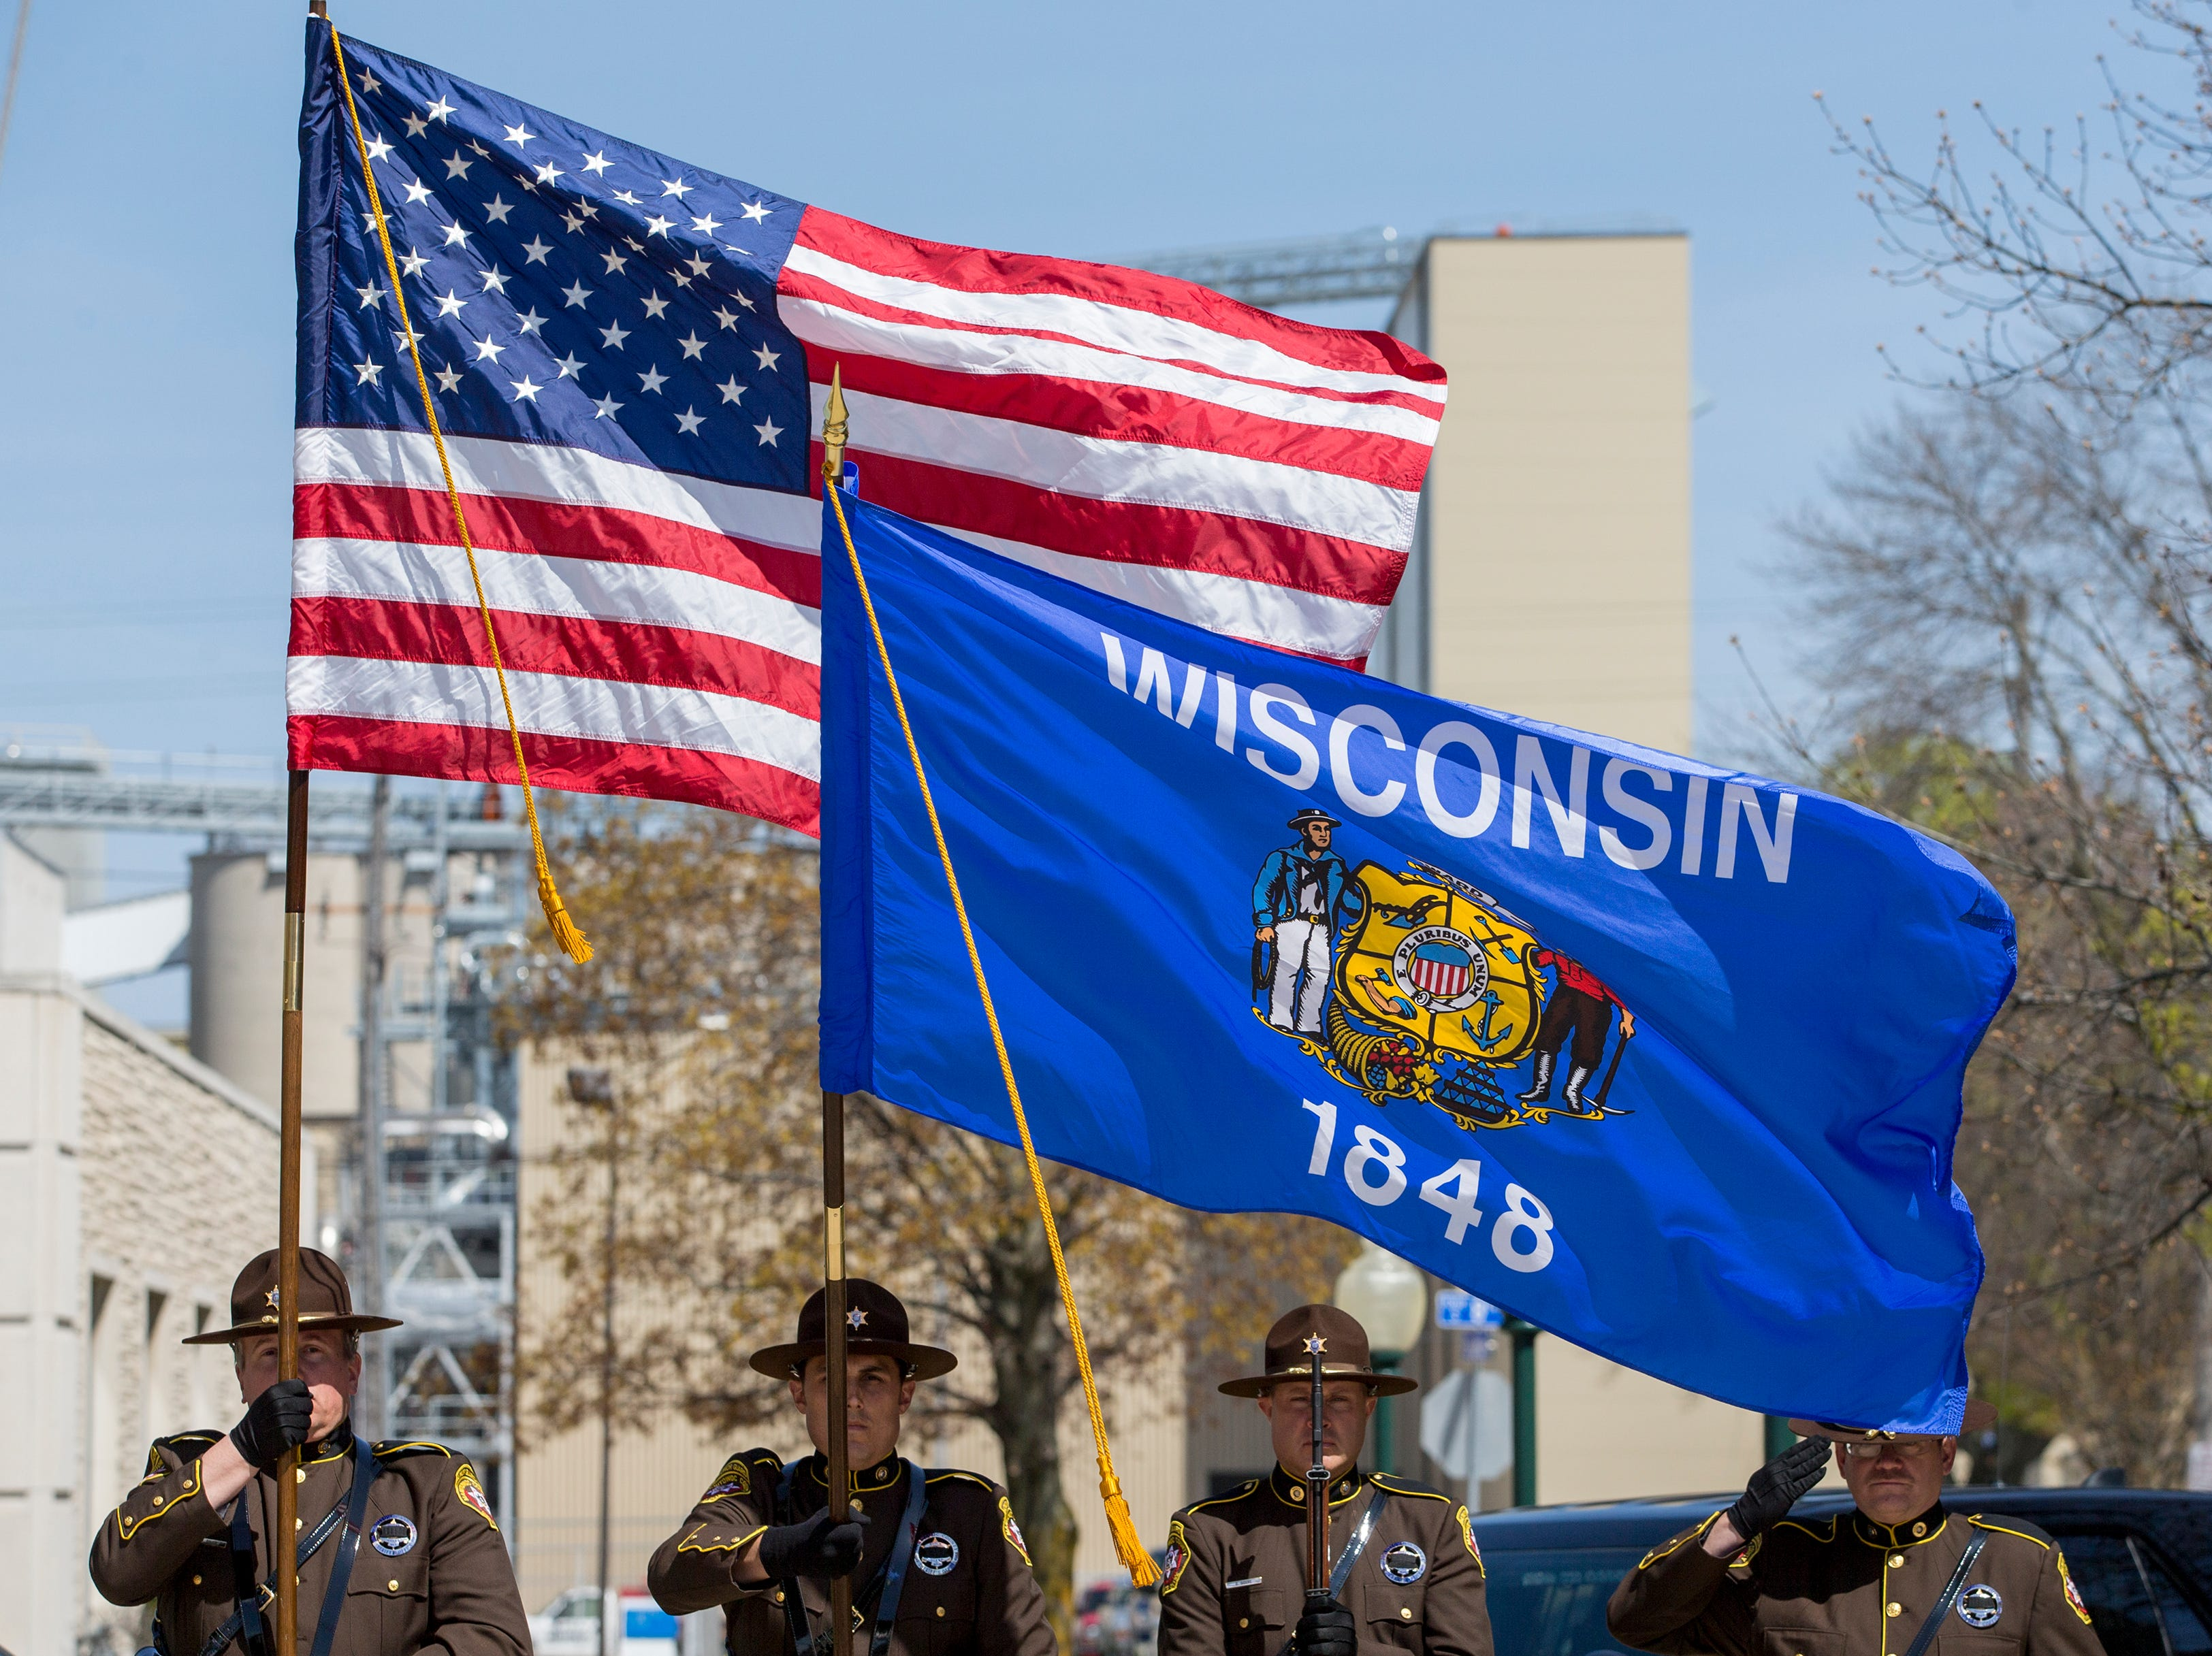 The Manitowoc County Sheriff's Office Honor Guard present the colors for the National anthem during the Manitowoc County Peace Officer Memorial Service Wednesday, May 15, 2019, in Manitowoc, Wis. Joshua Clark/USA TODAY NETWORK-Wisconsin